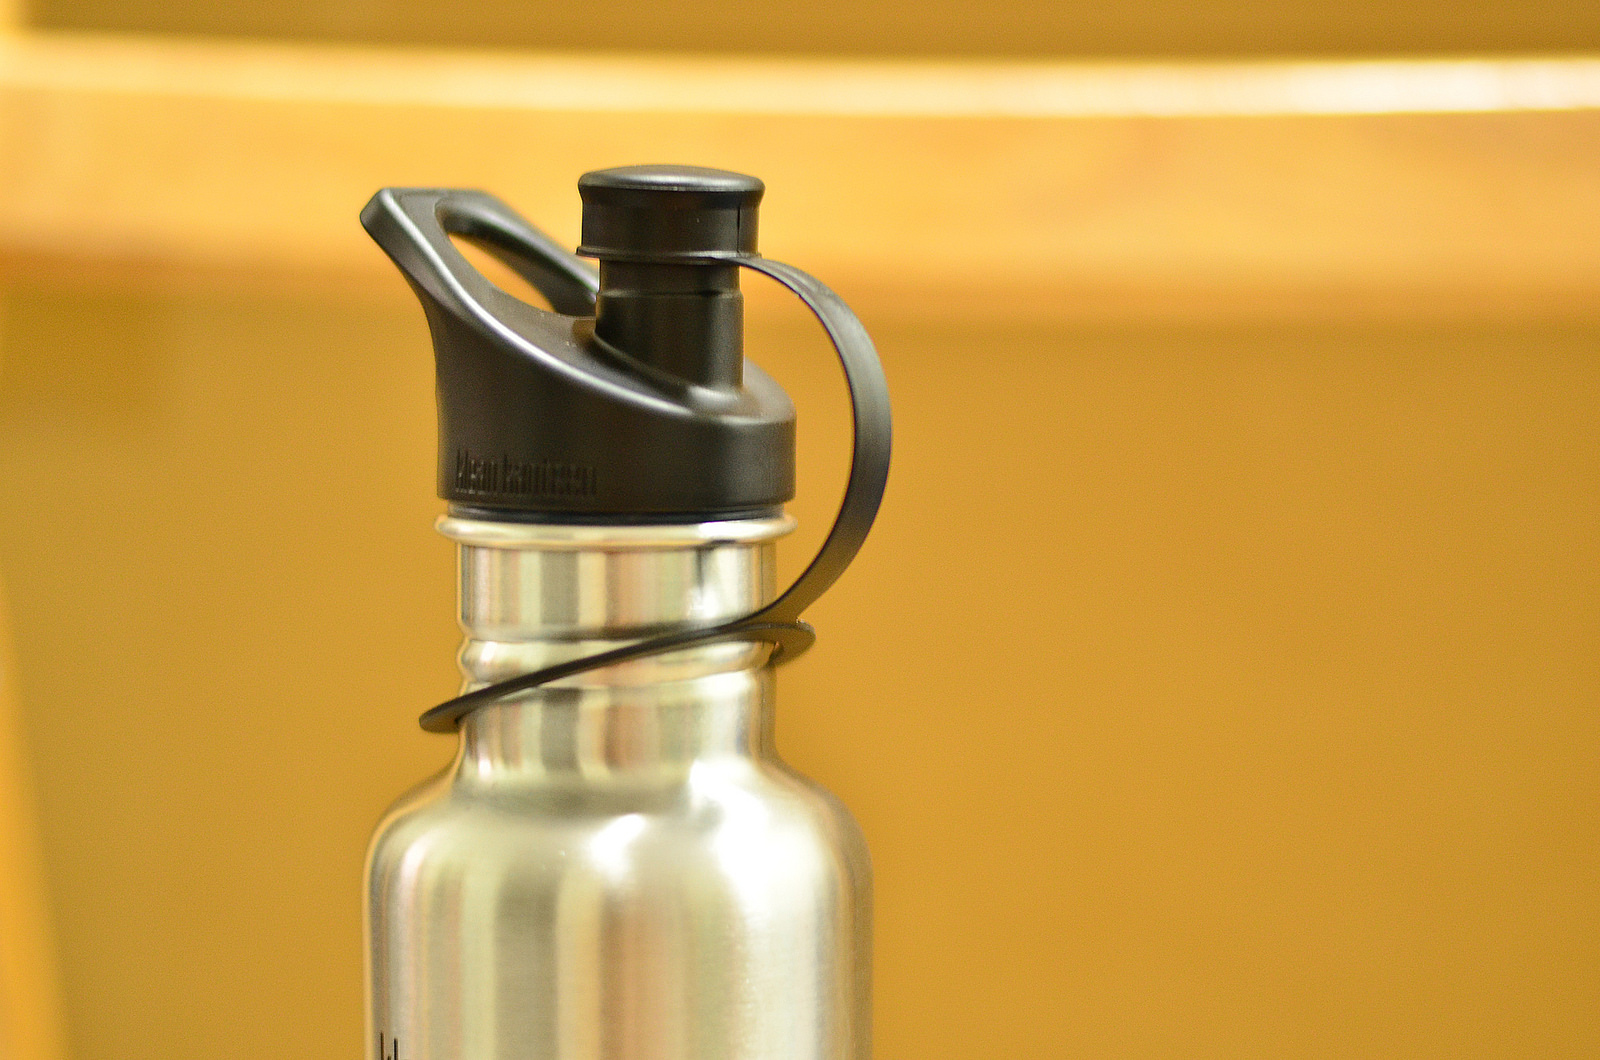 Re-Usable Water Bottle, photo cred: xlrider, flickr